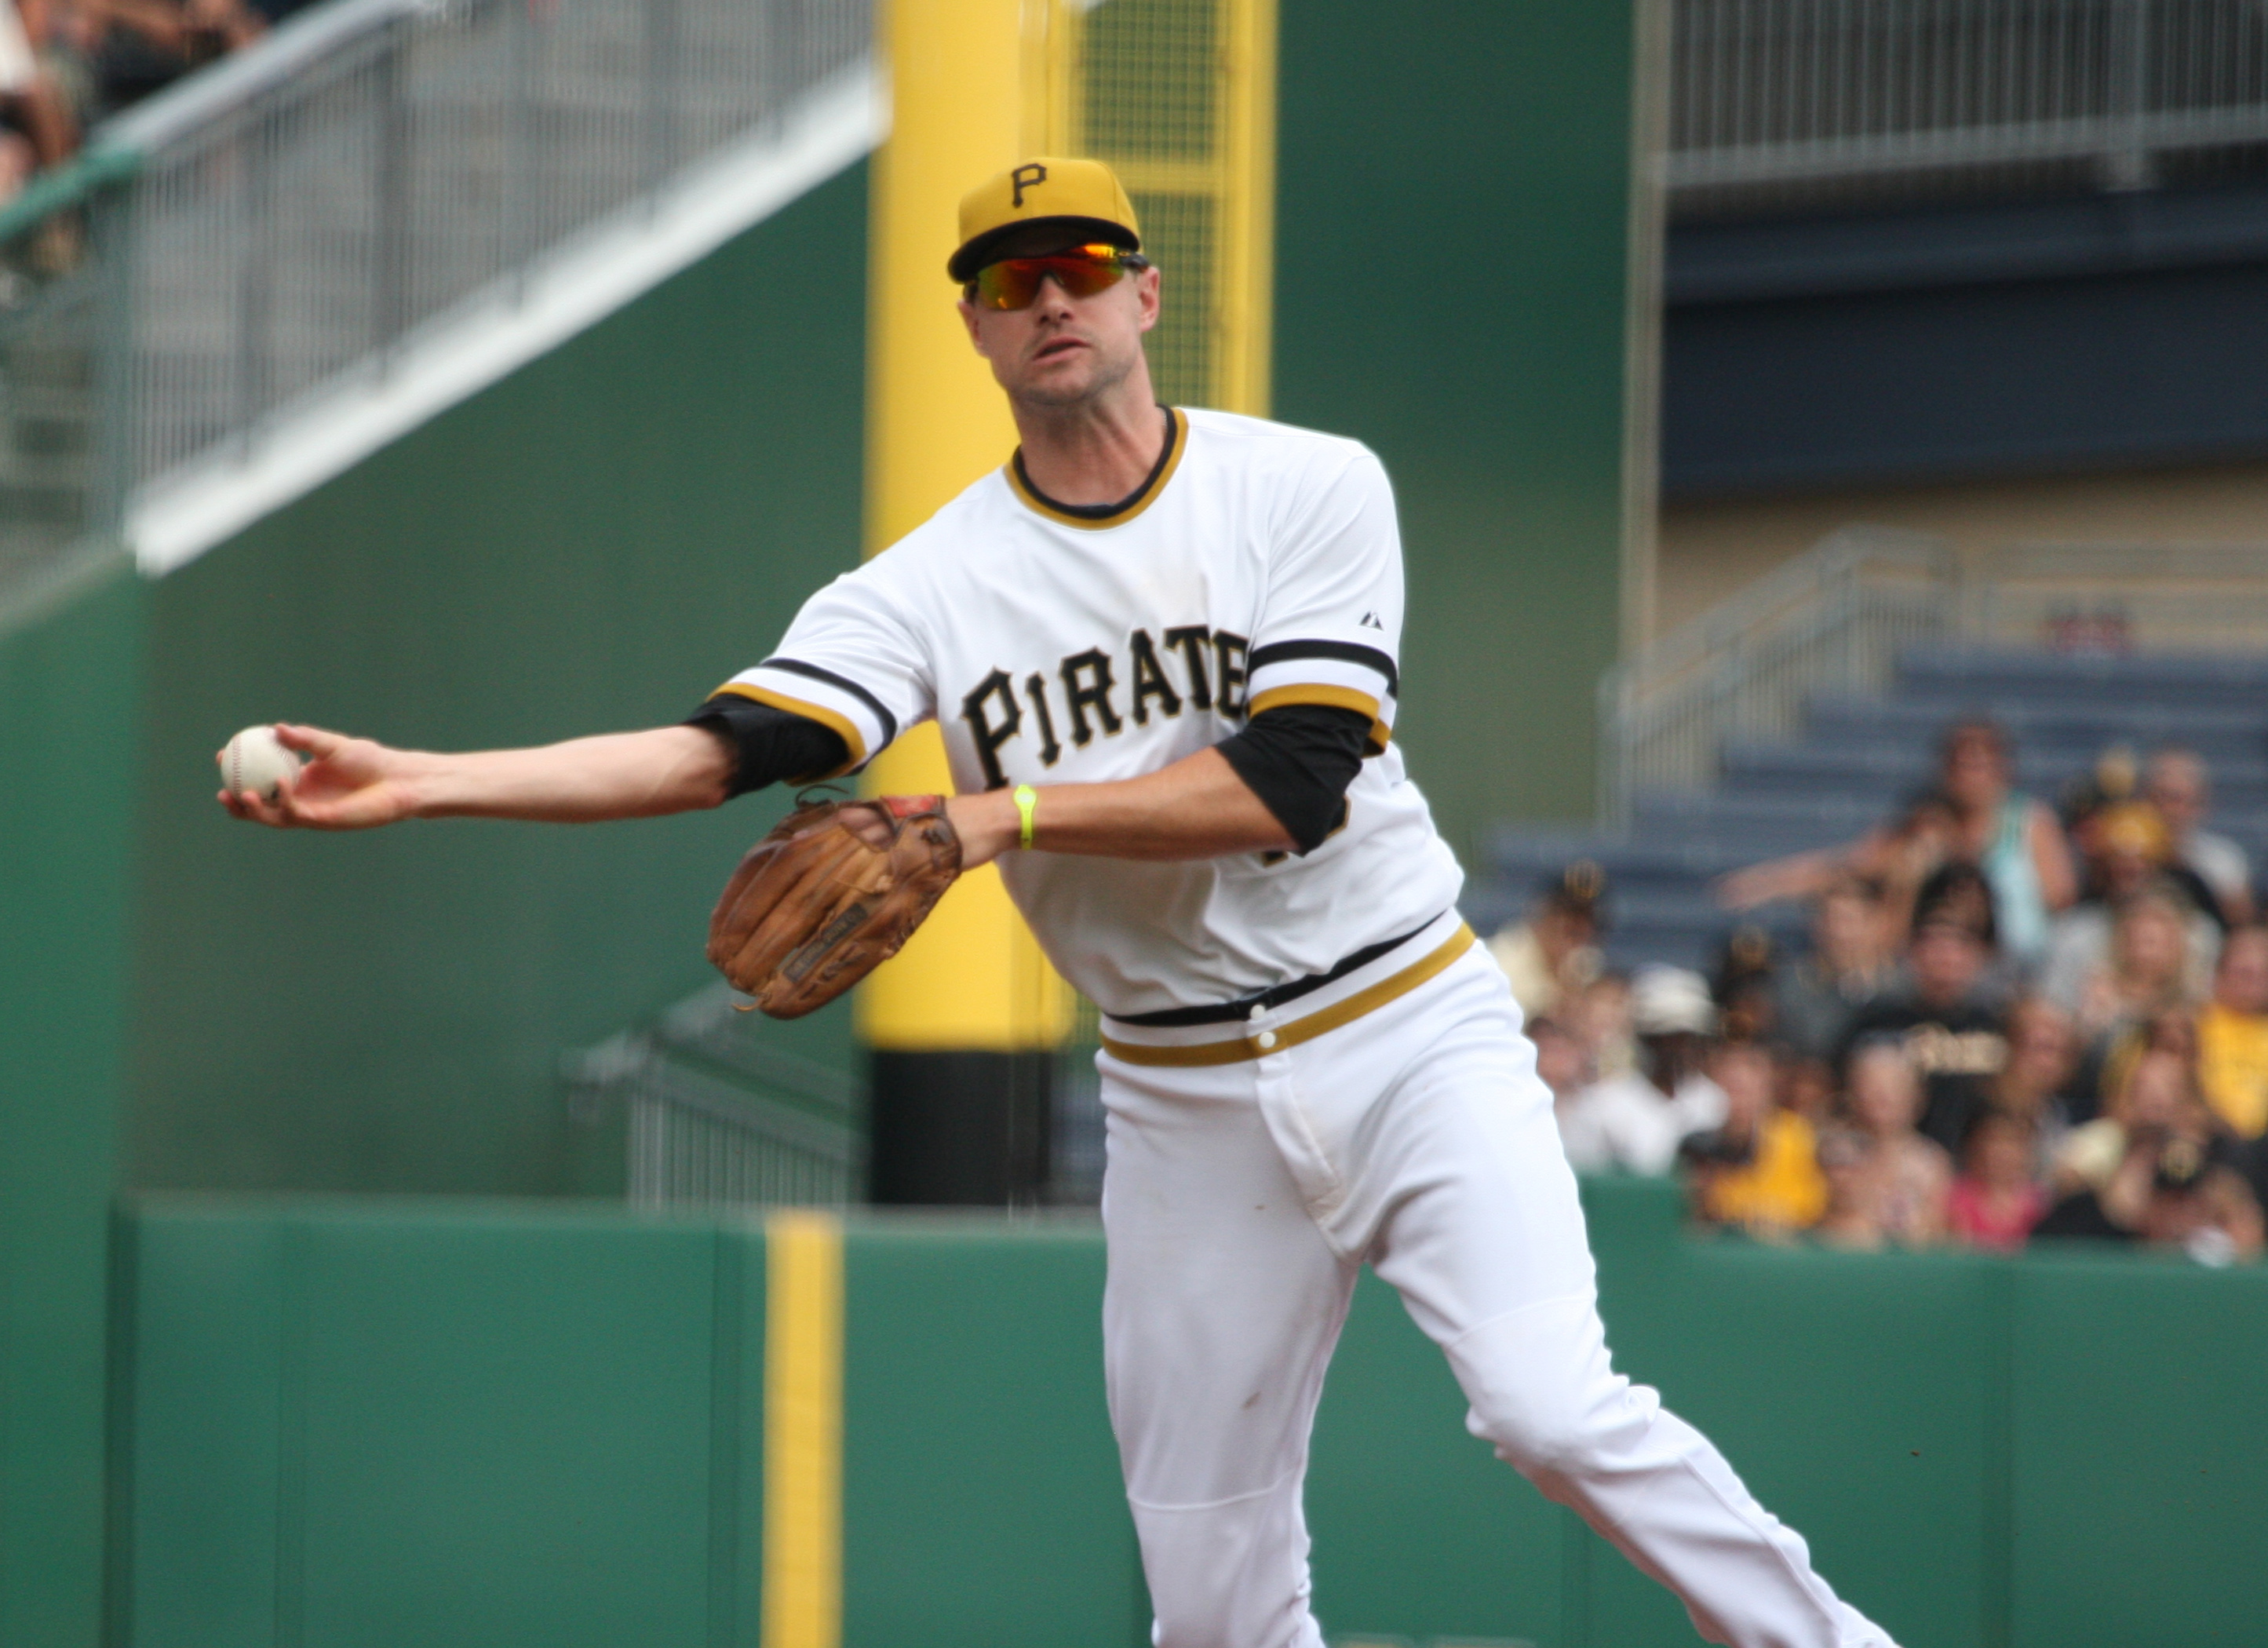 2014 Recaps: The Pirates Have Finally Found Their Shortstop in Jordy Mercer